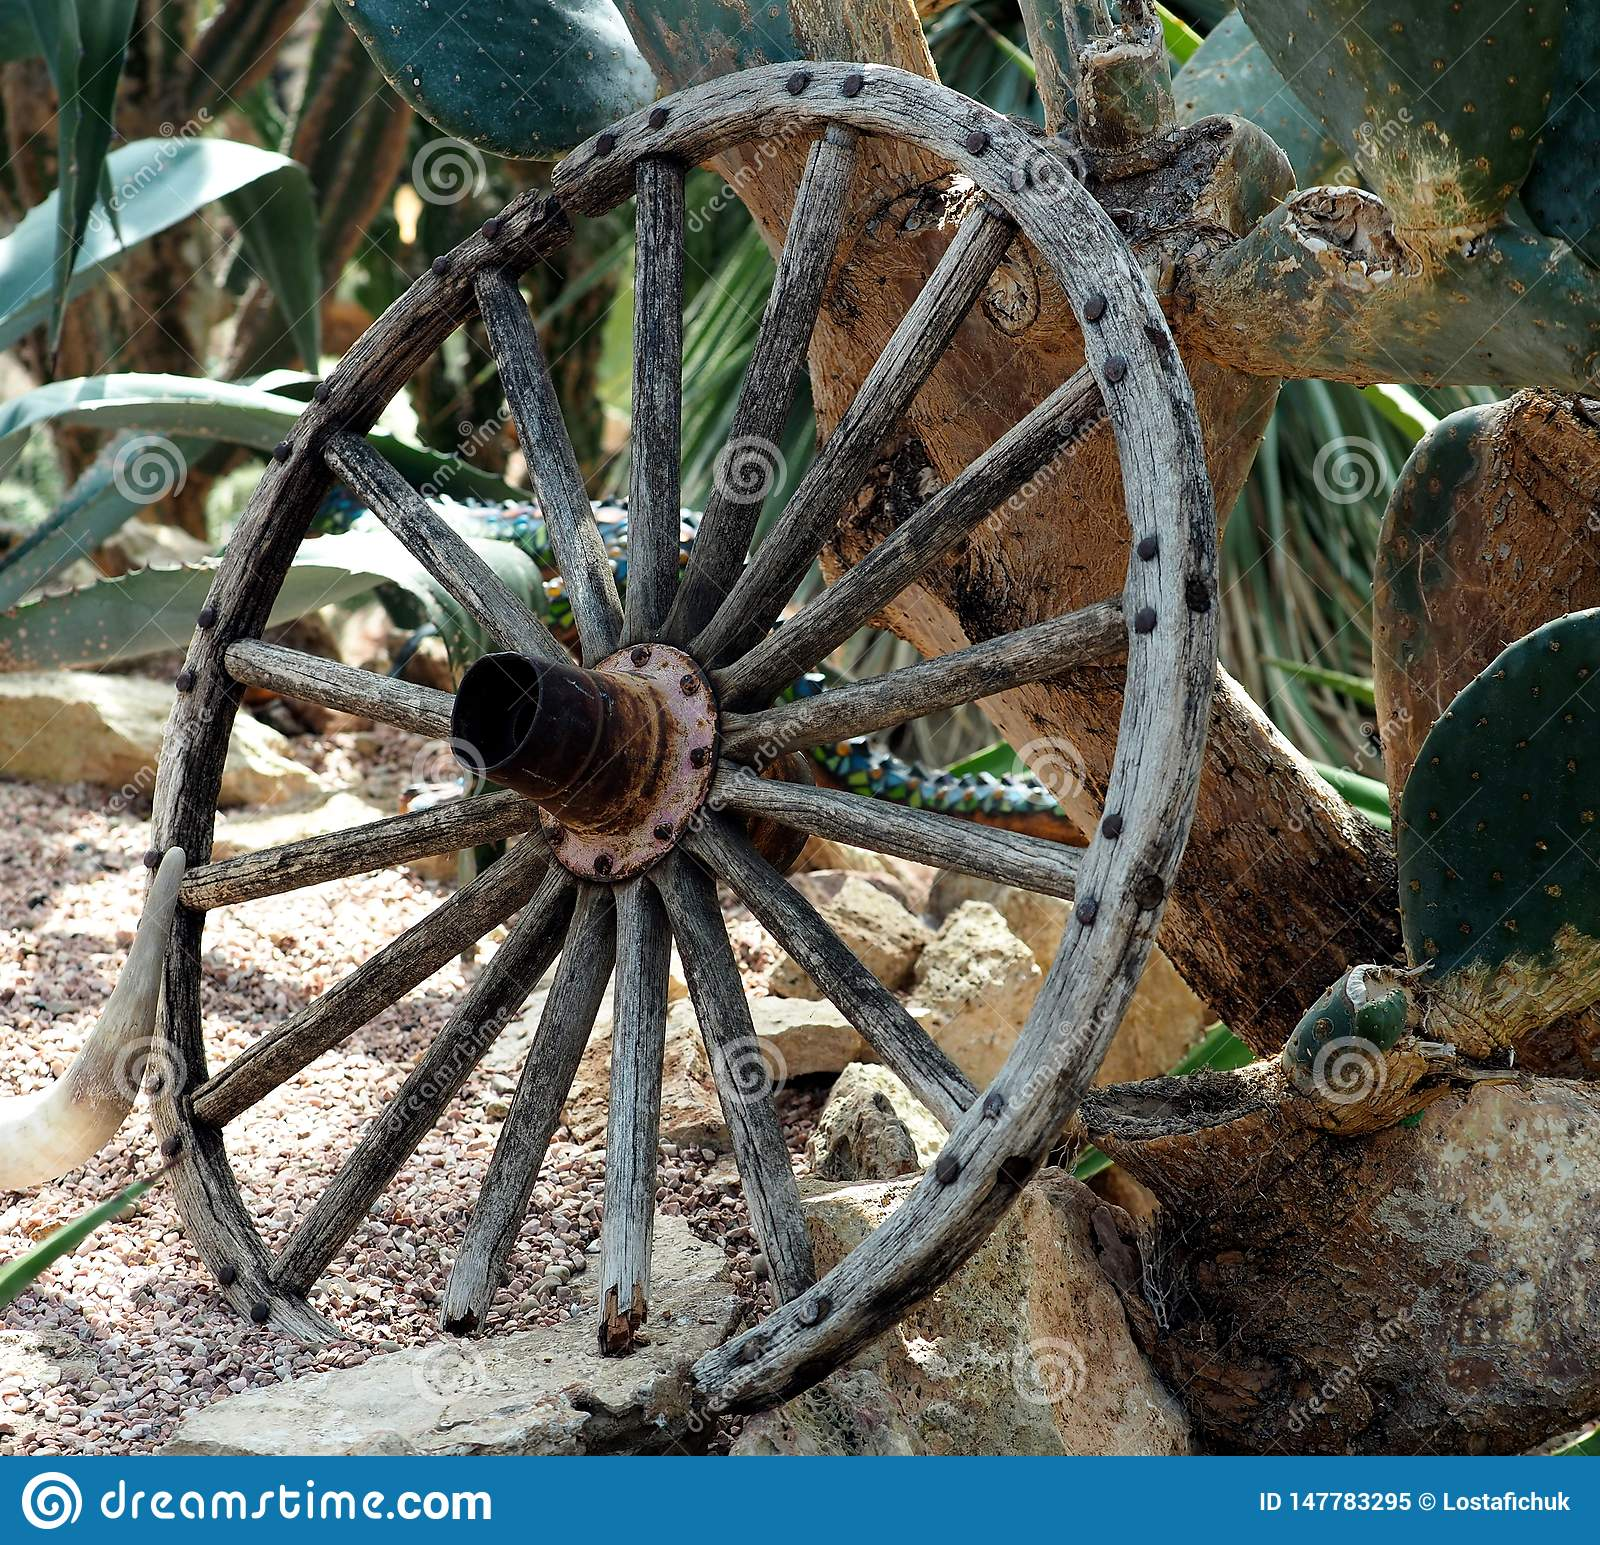 Antique Wooden Wagon Wheel Against Cactus Plant Stock Image Image Of Fashioned Wagon 147783295